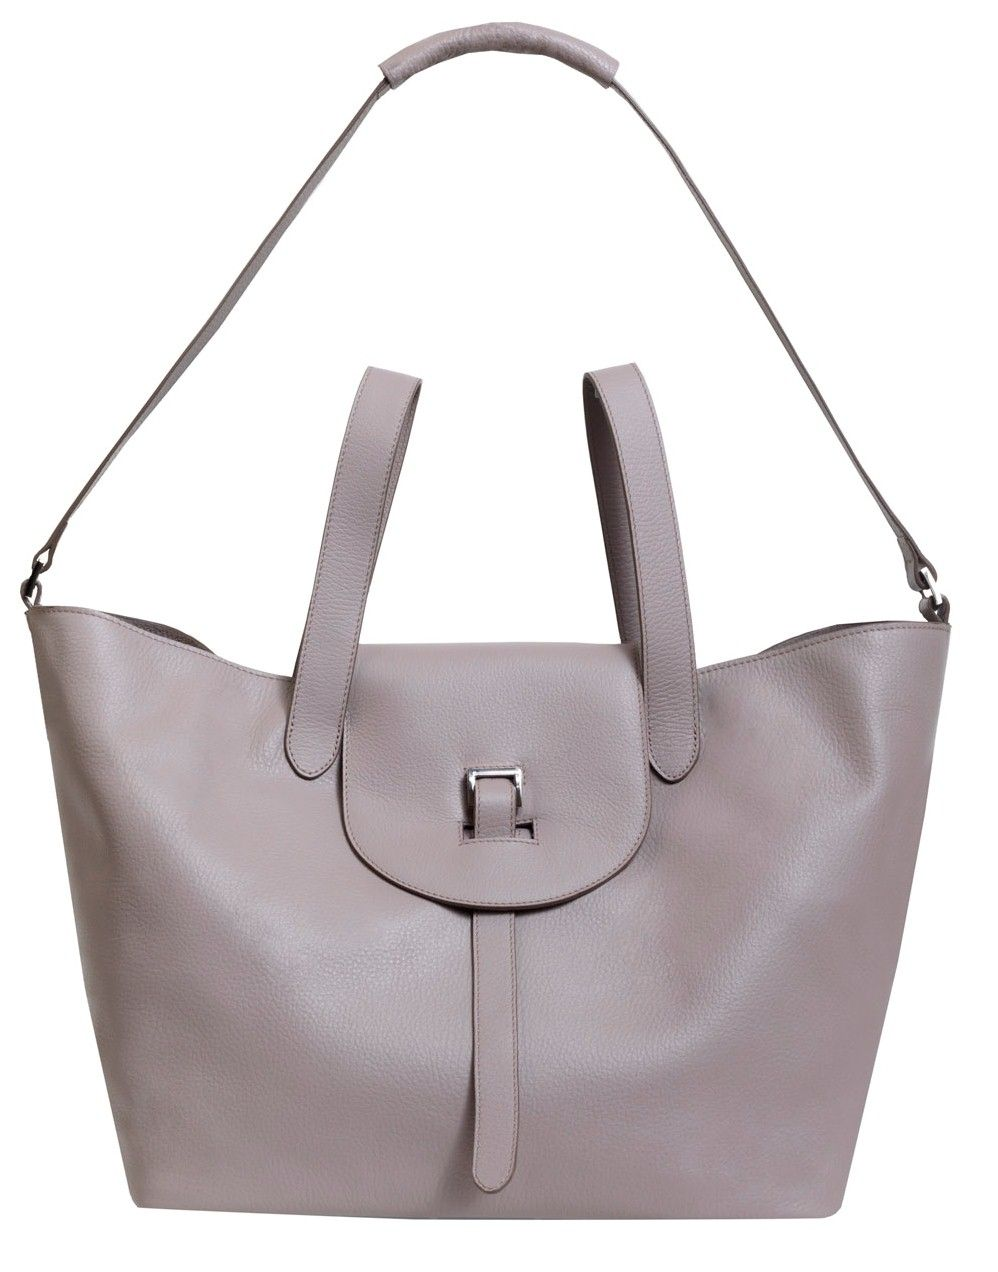 754c30cb07ec ... Italian leather handbags. Taupe Thela bag from Meli Melo